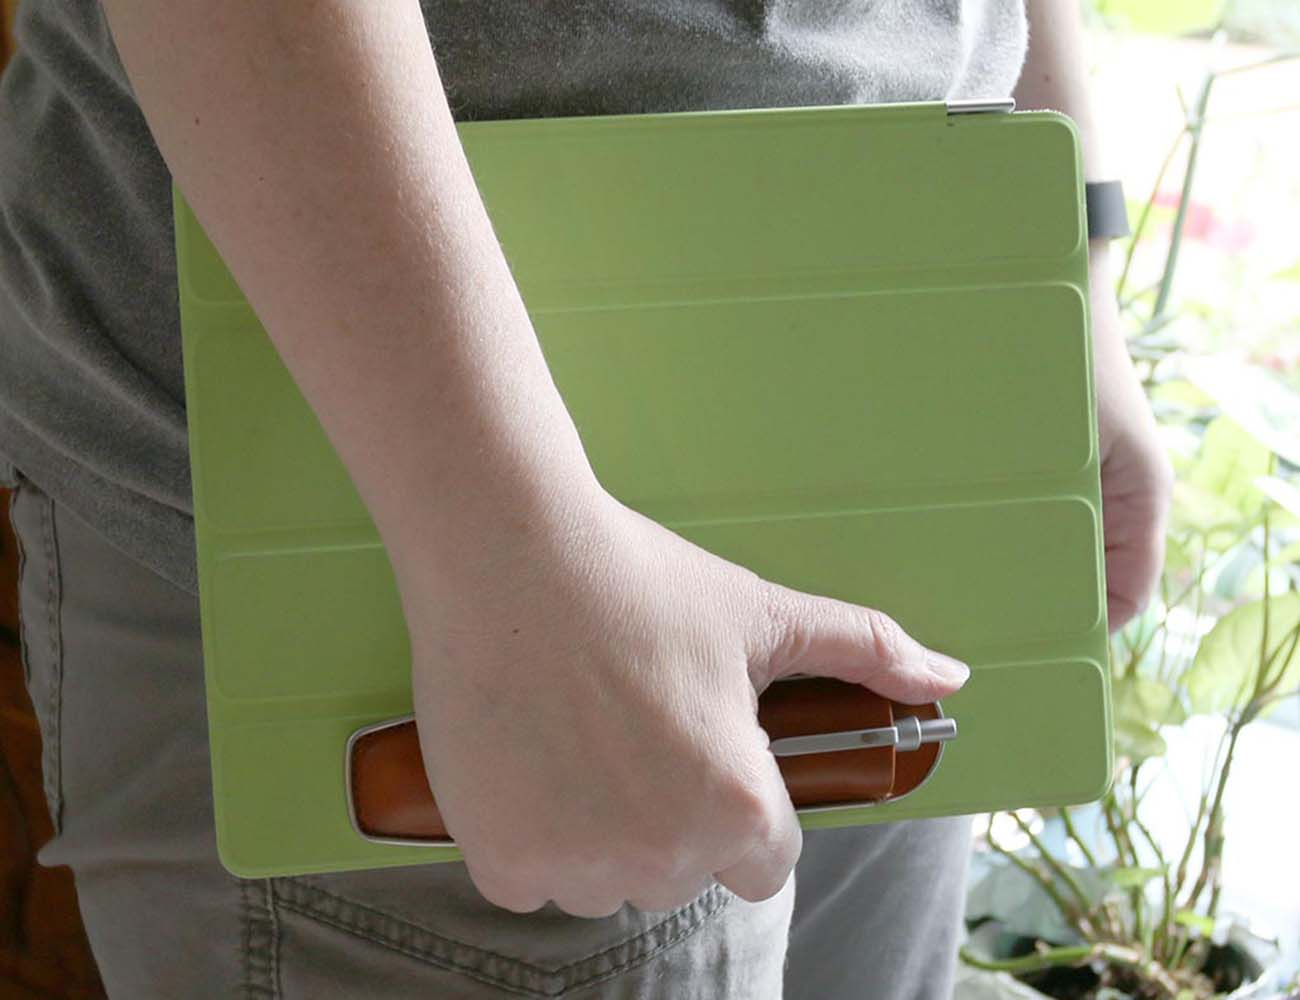 Remora – A Stylus & Pen Case that Uses Magnetism to Securely Attach to Apple iPad Smart Covers